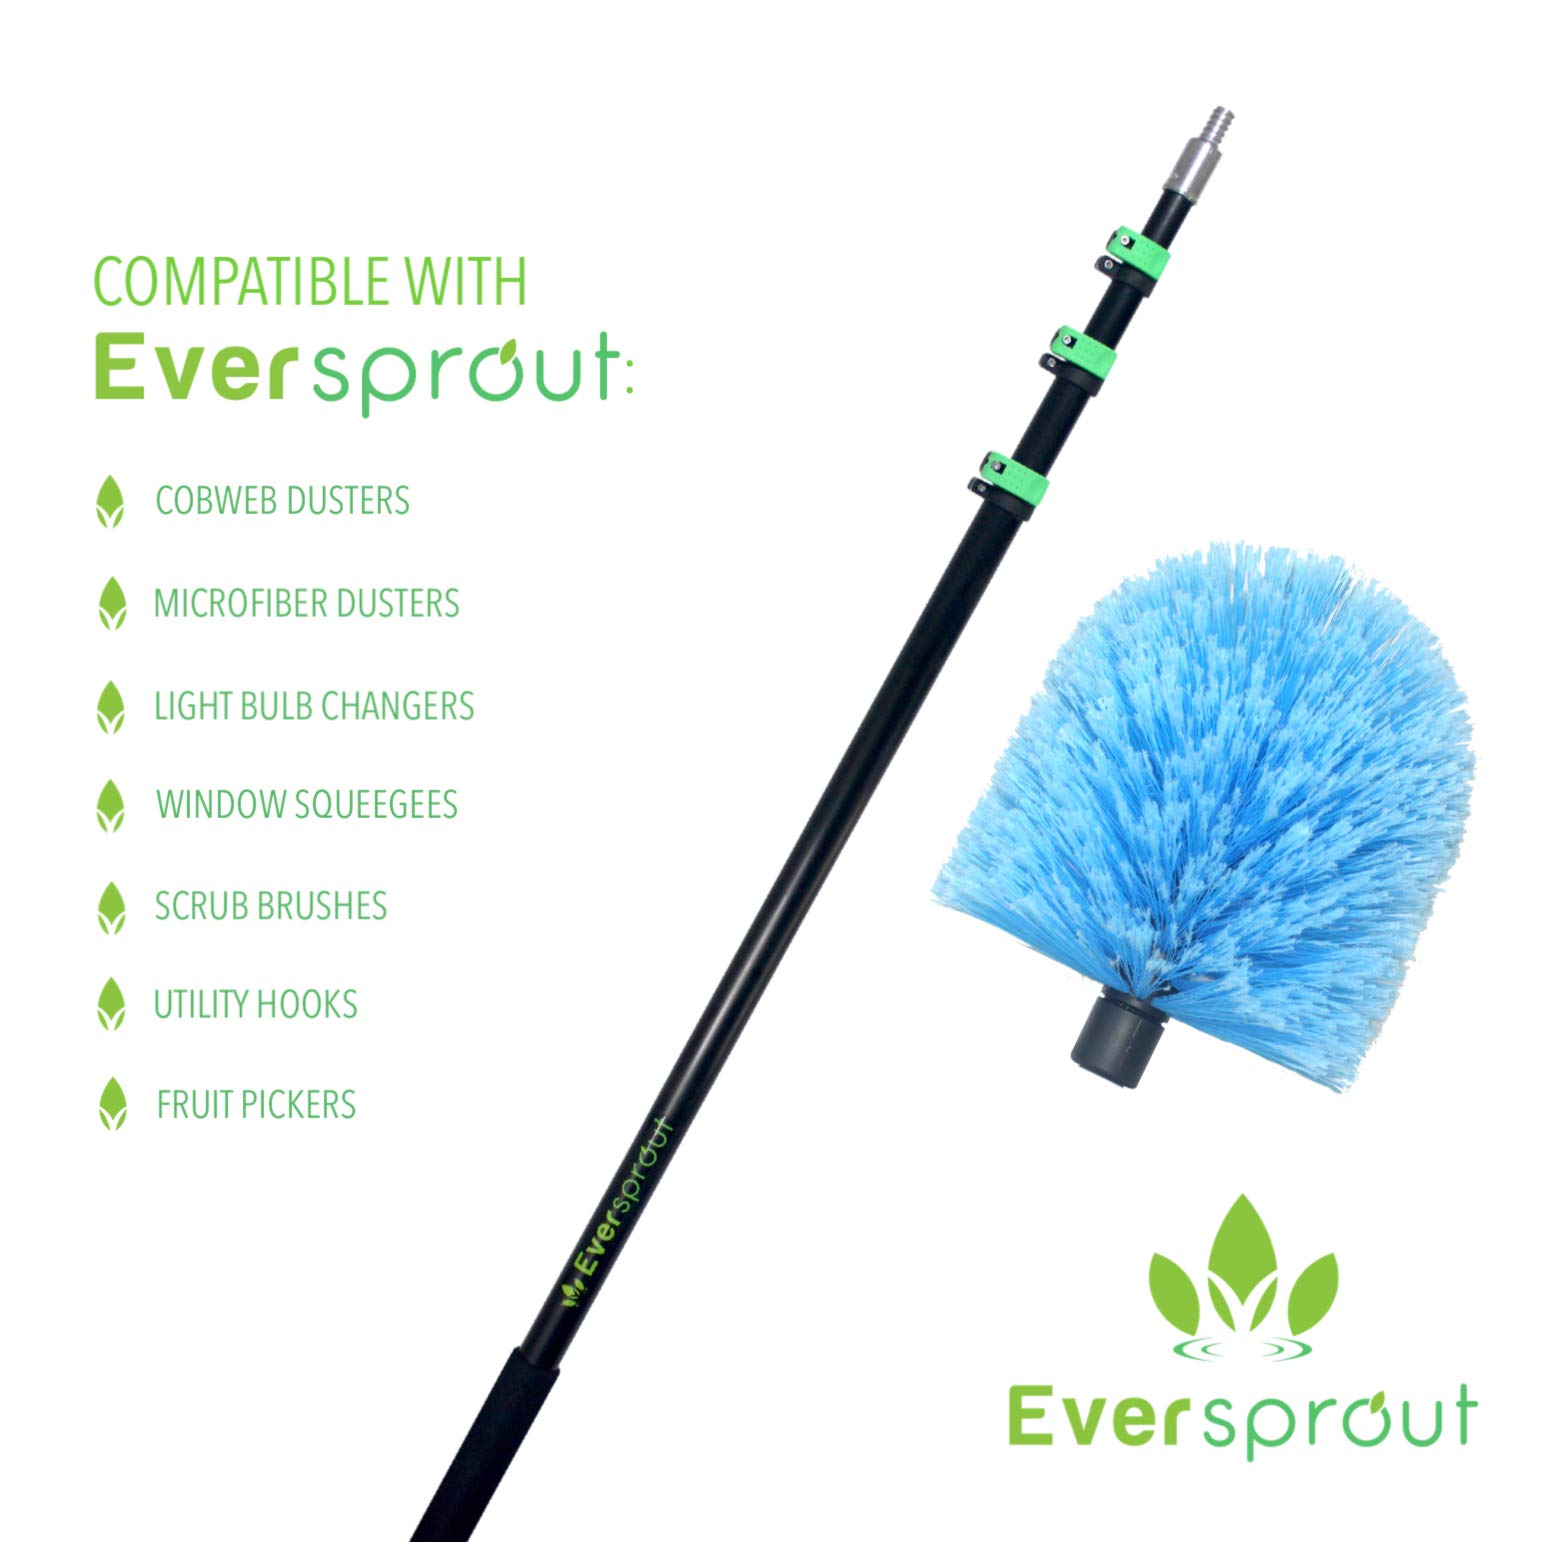 EVERSPROUT 7-to-25 Foot Cobweb Duster and Extension-Pole Combo (30 Ft. Reach, Soft Bristles) | Hand Packaged | Heavy-Duty, 4-Stage Aluminum Pole | Indoor & Outdoor Use Brush Attachment by EVERSPROUT (Image #2)